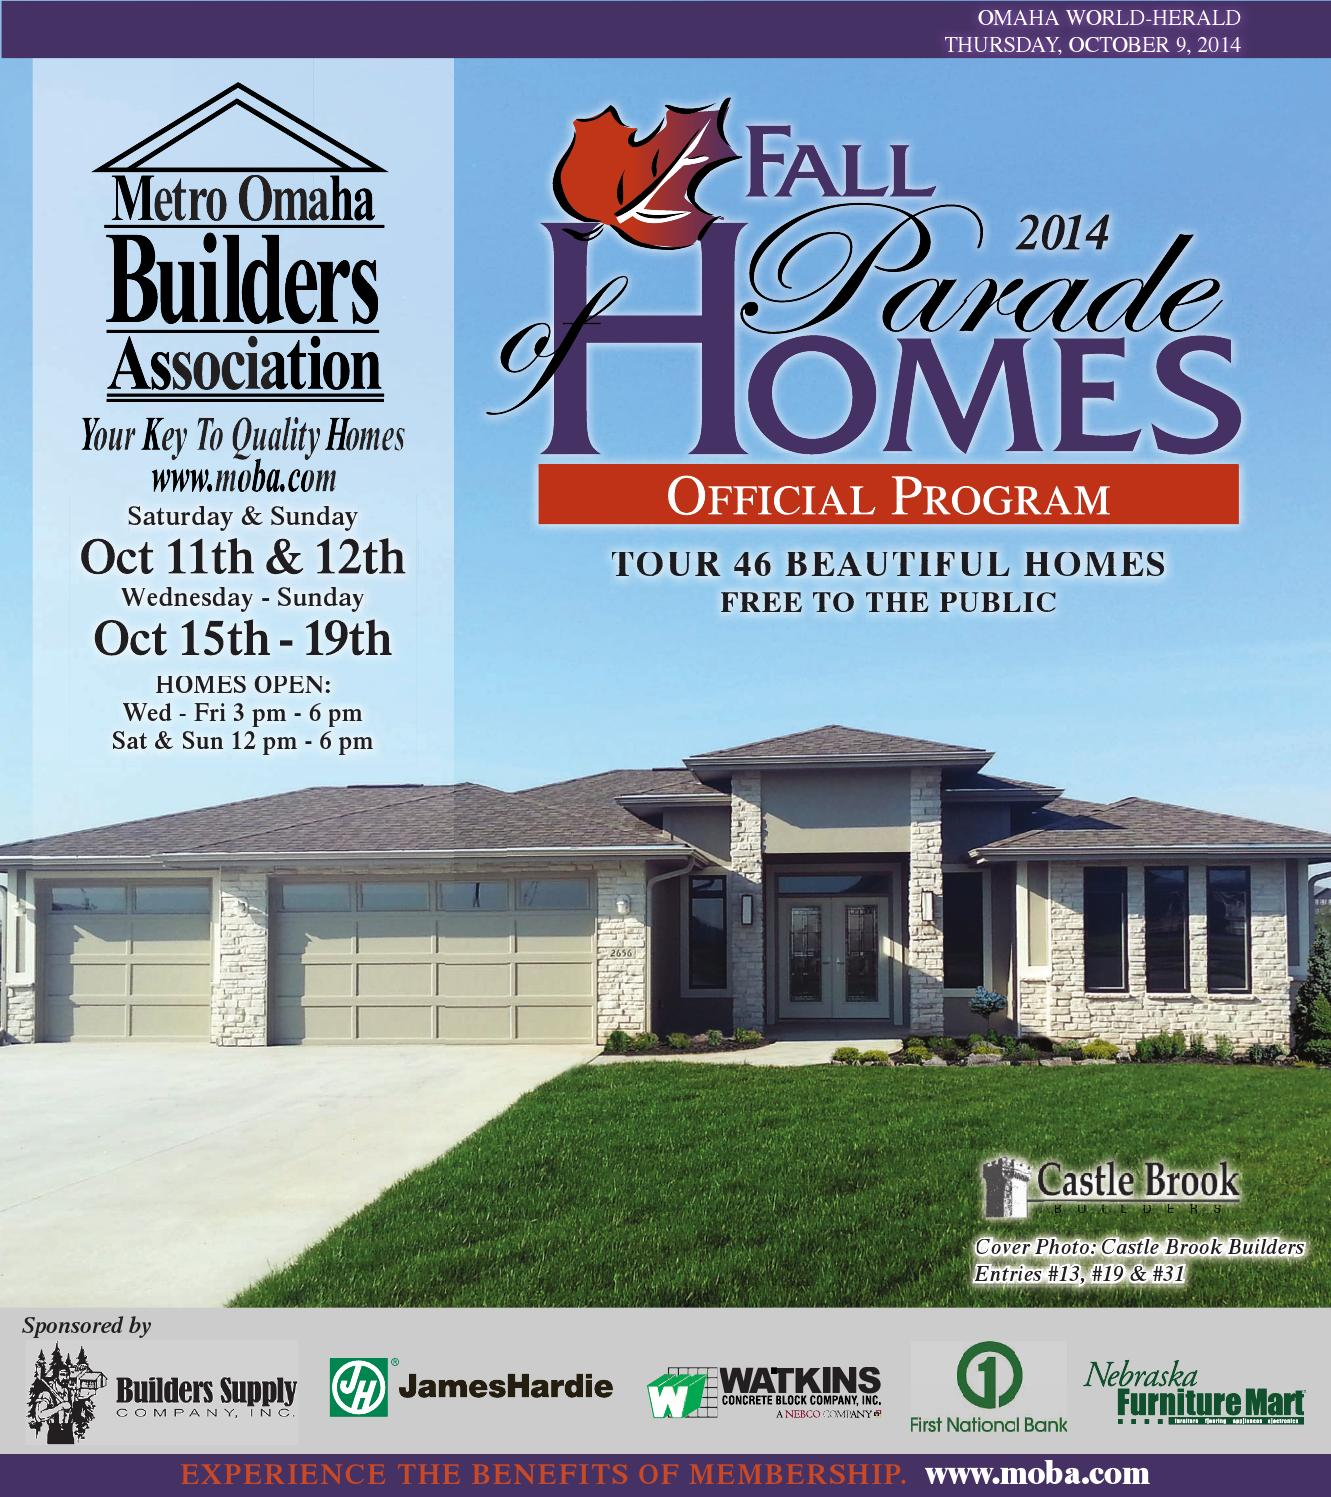 moba fall parade of homes by omaha world herald issuu